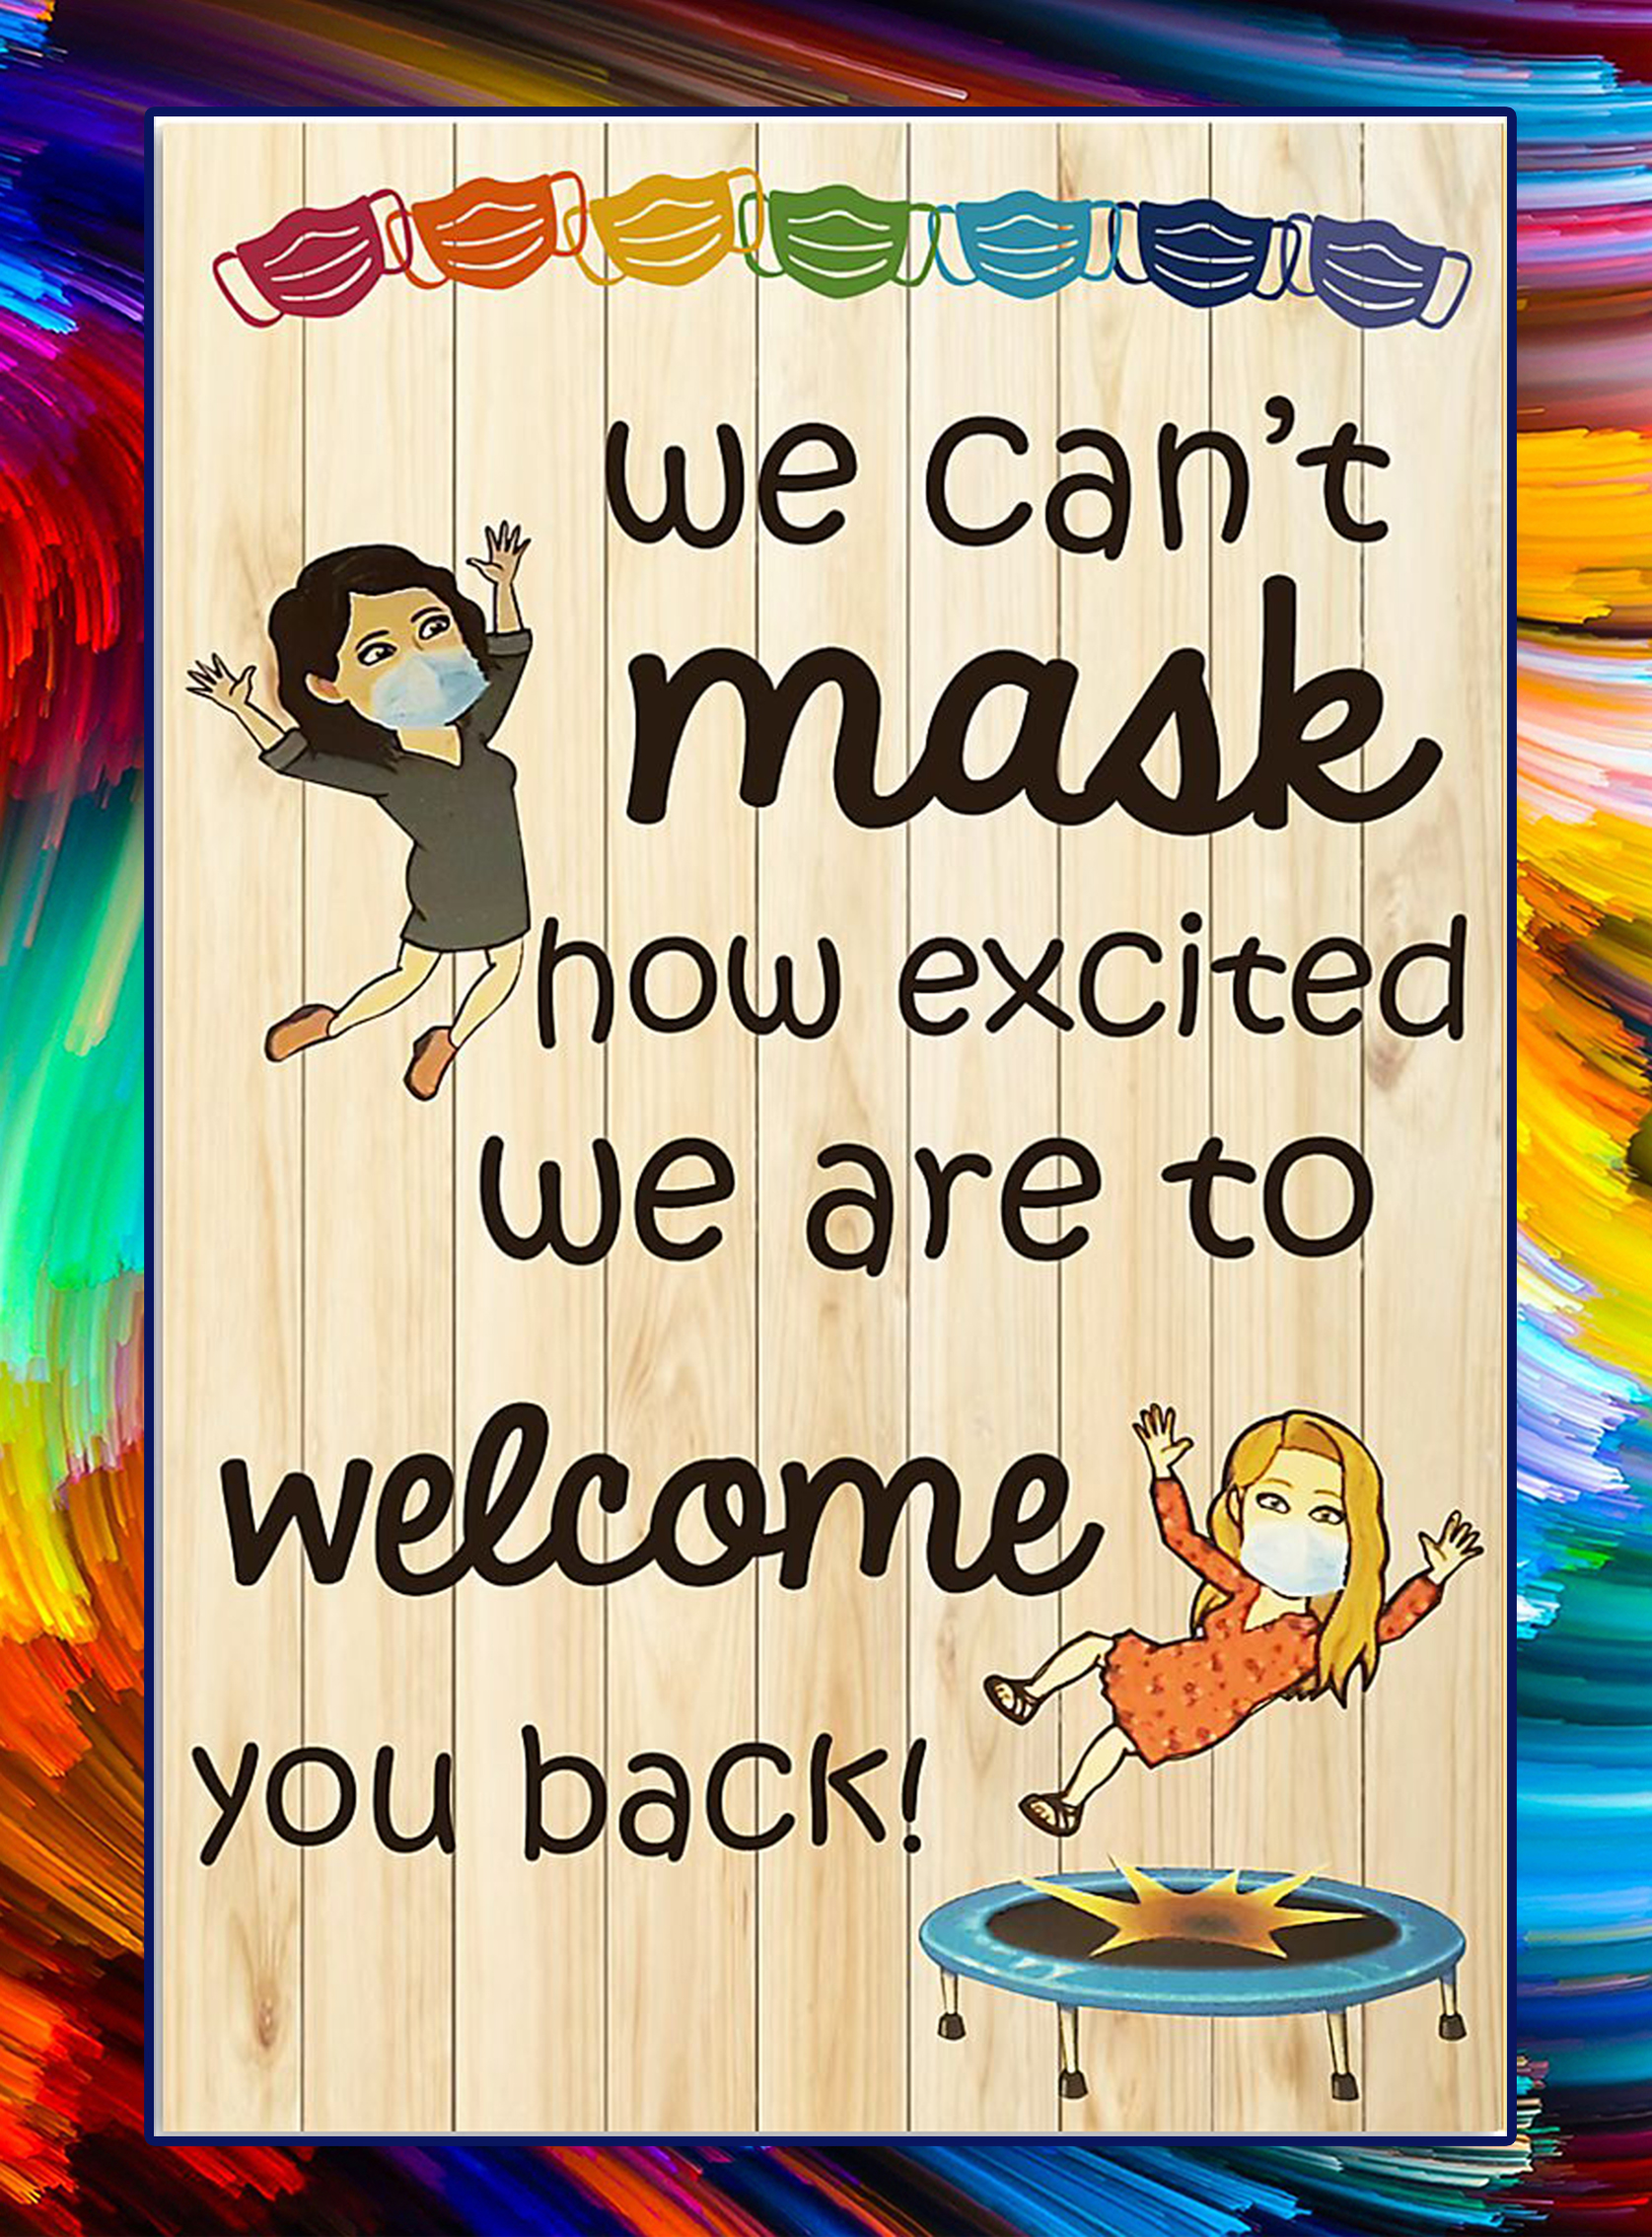 We can't mask how excited we are to welcome you back poster - A3